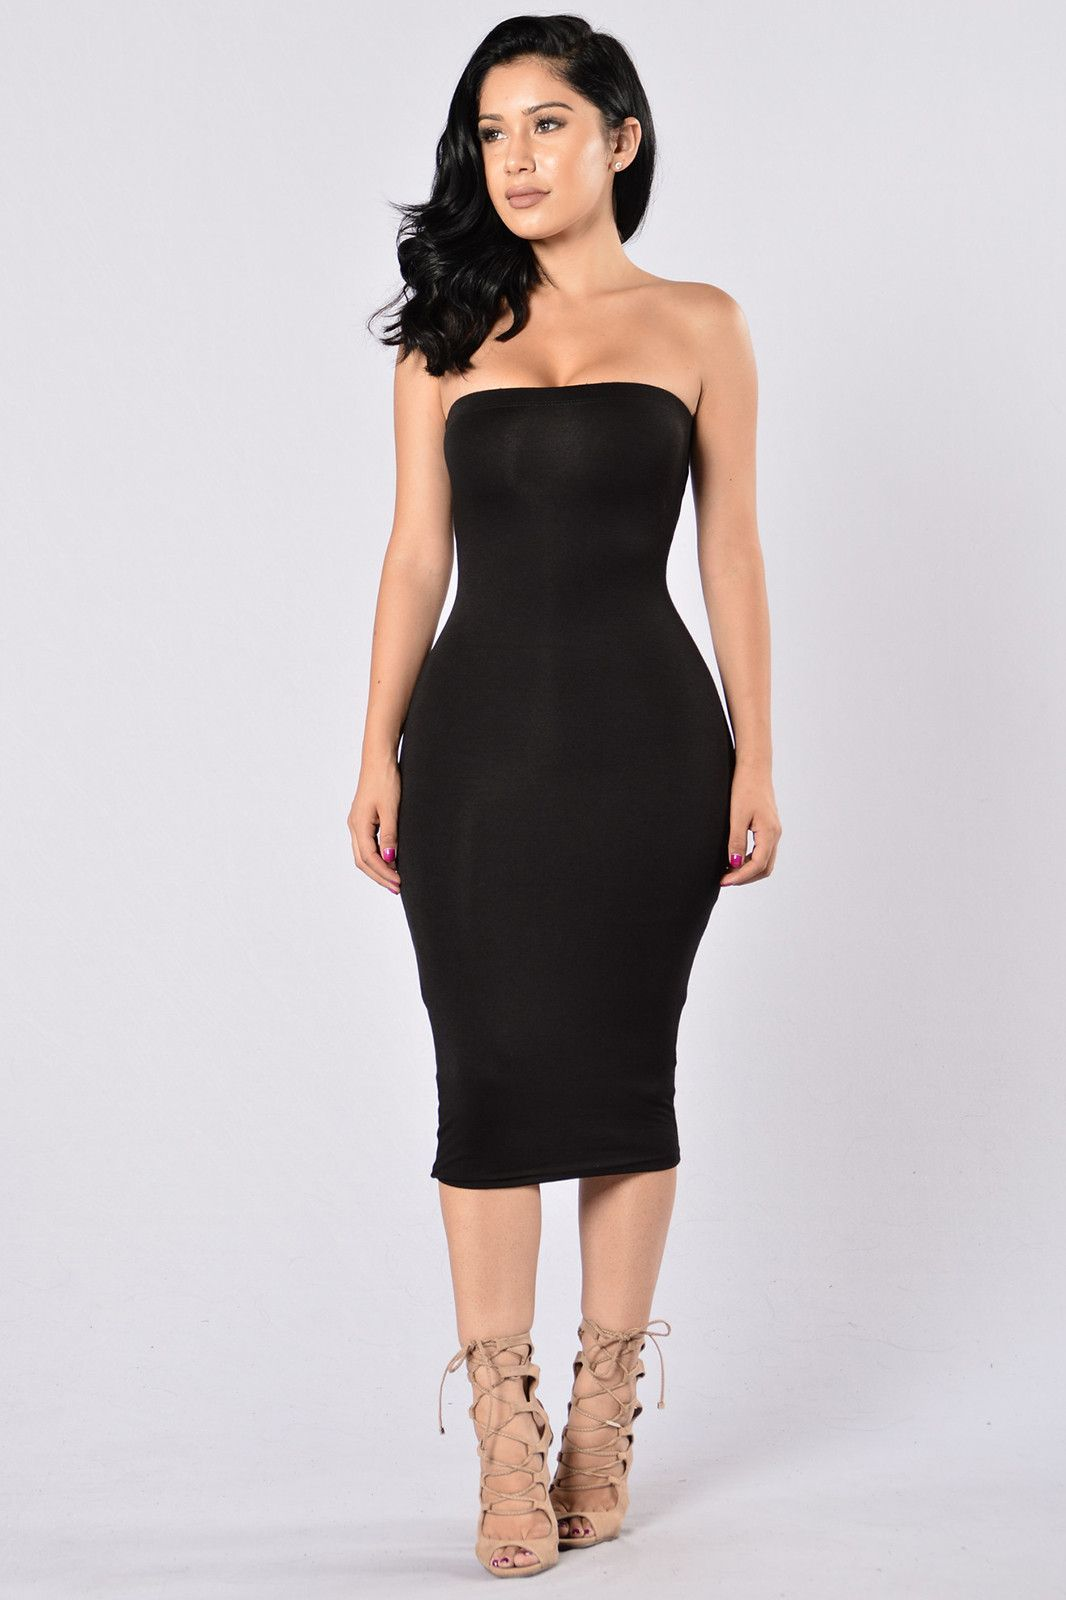 8615b9c3535ab Tube Dress - Elastic Band - Double Lined - Made in USA - 95% Rayon 5%  Spandex Item #: 02901